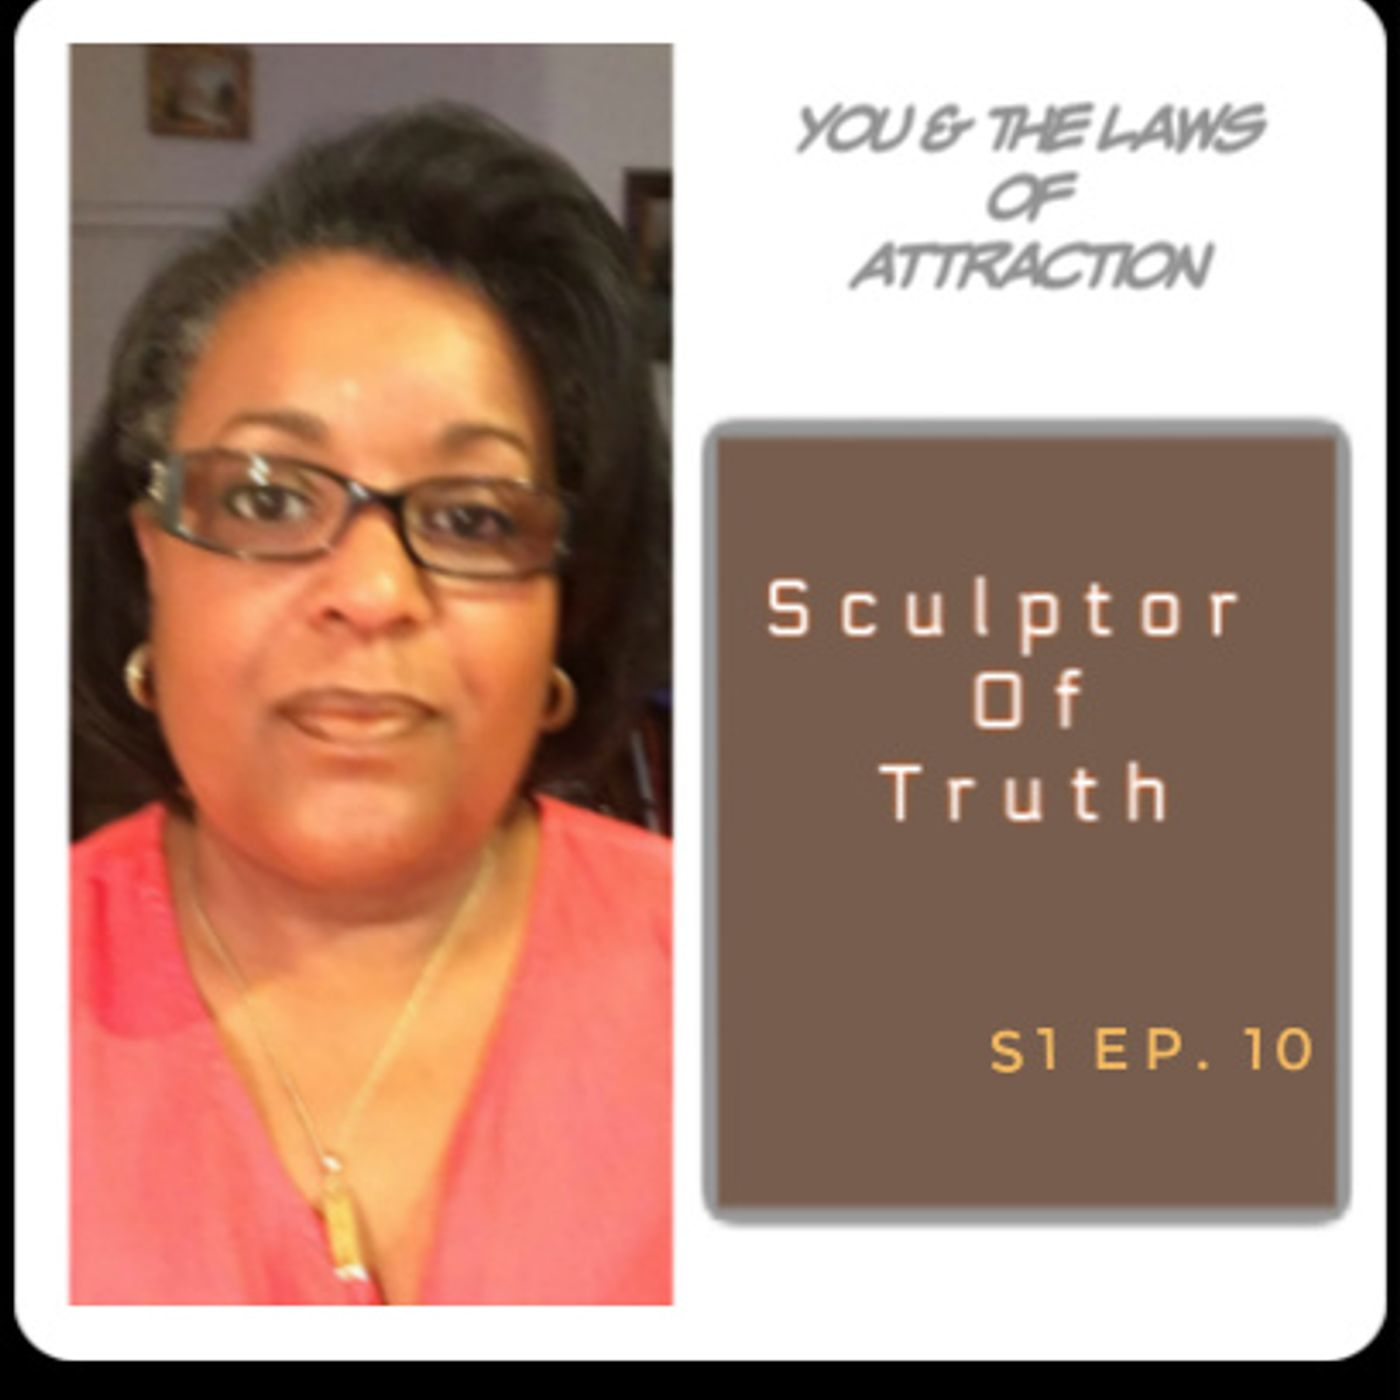 Sculptor of Your Truth